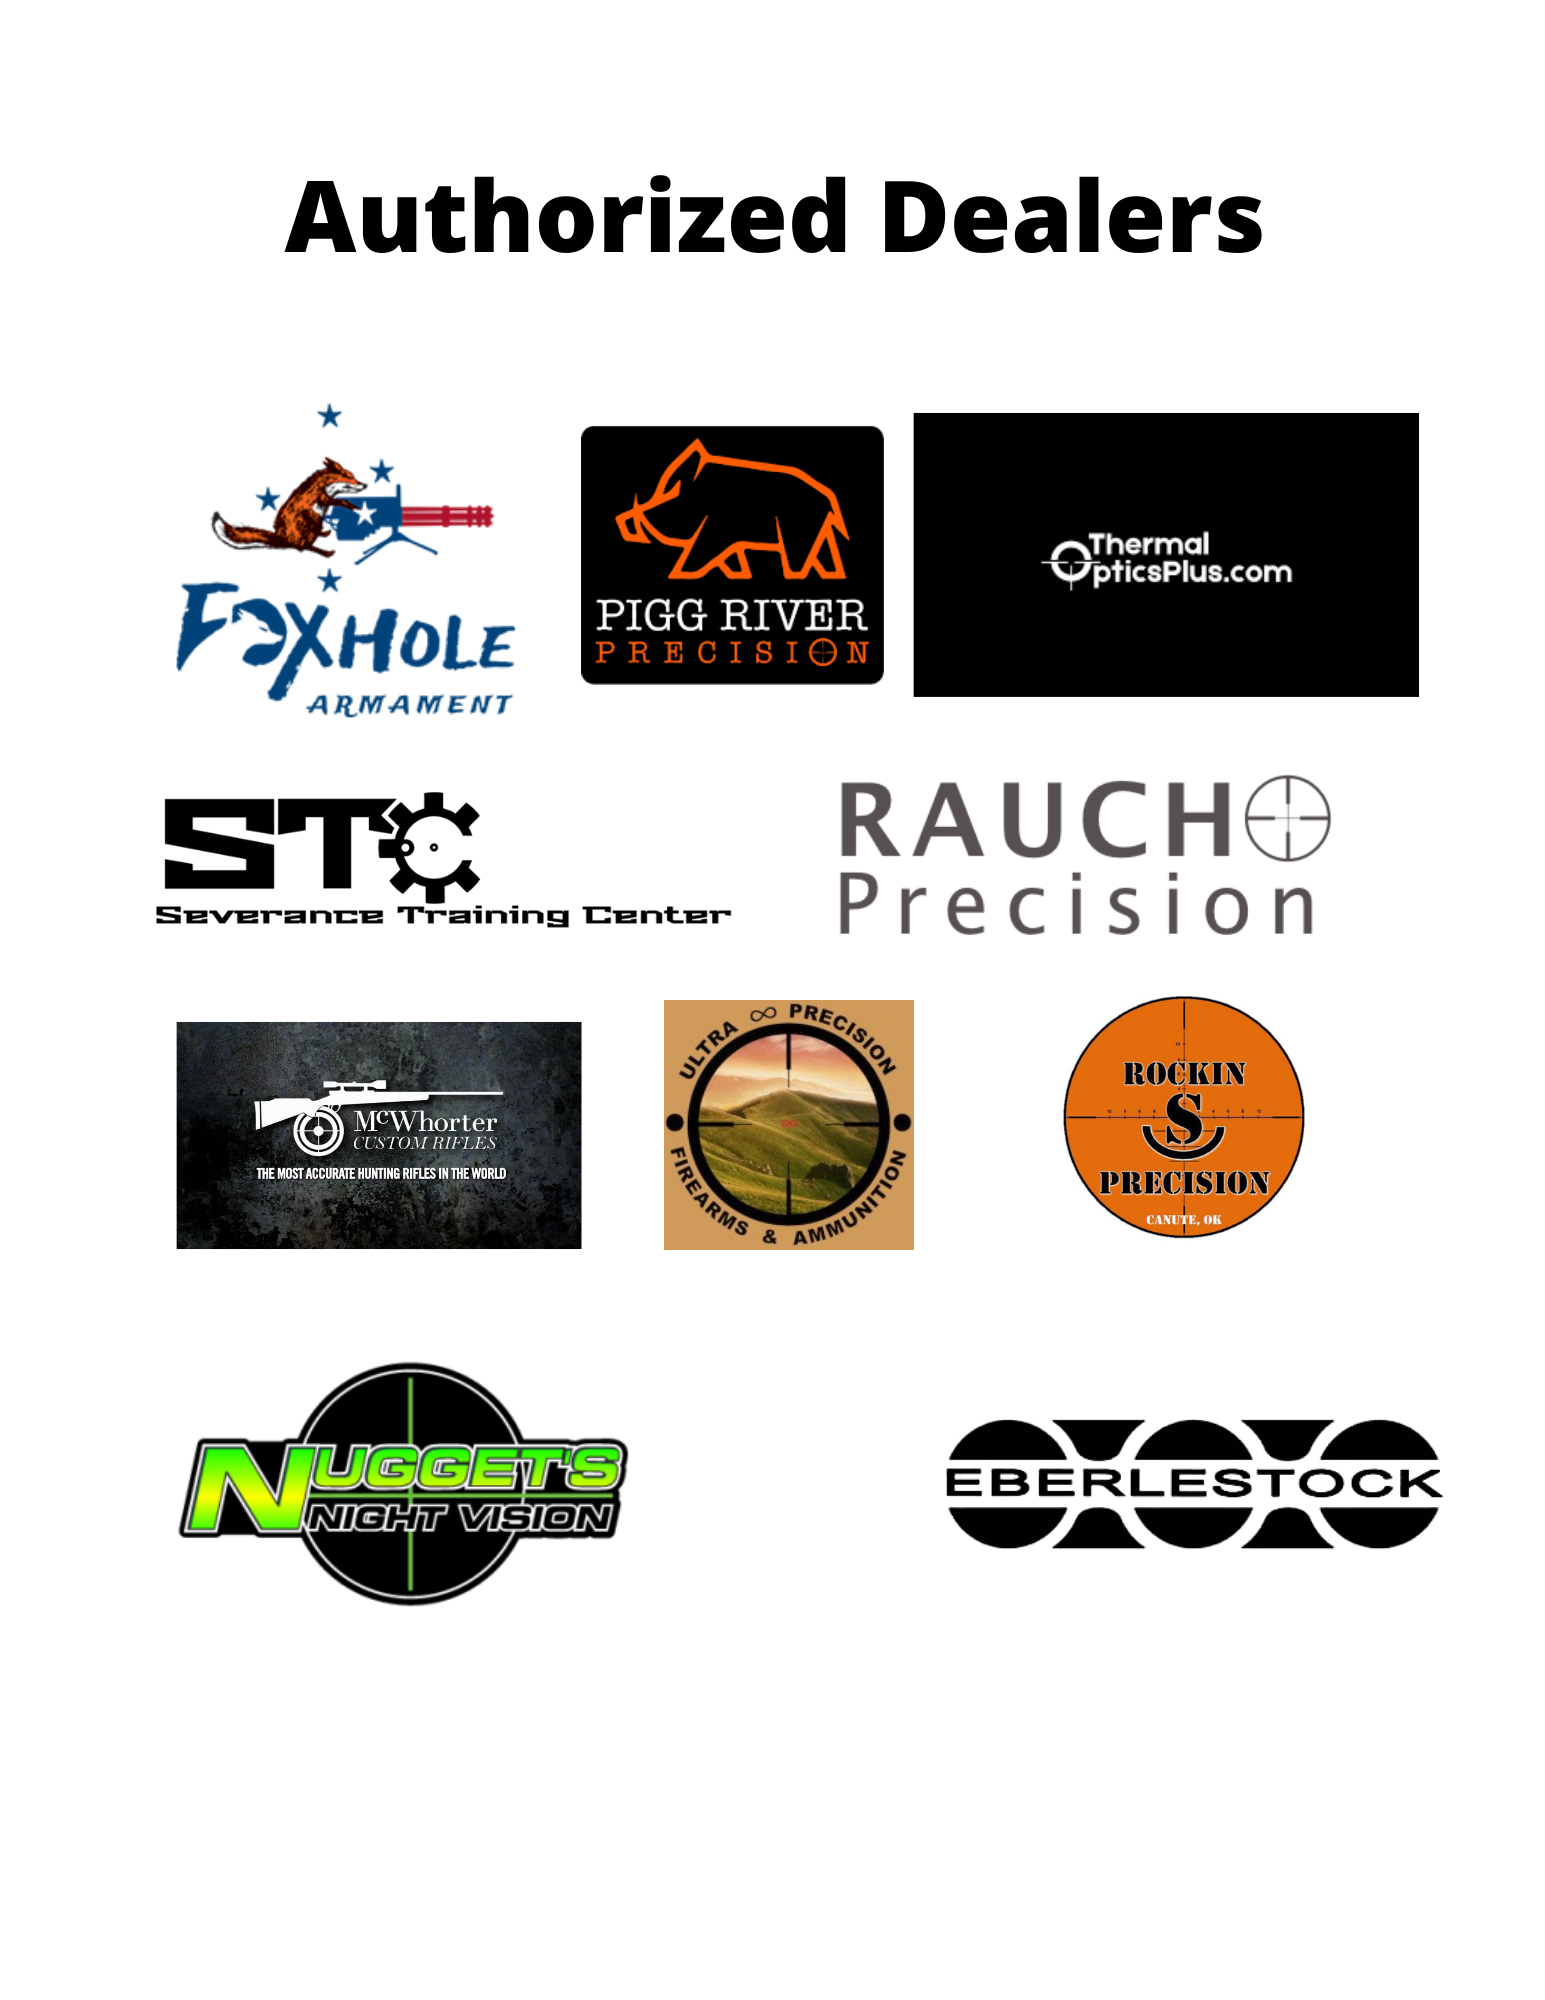 authorized-dealers-2.png